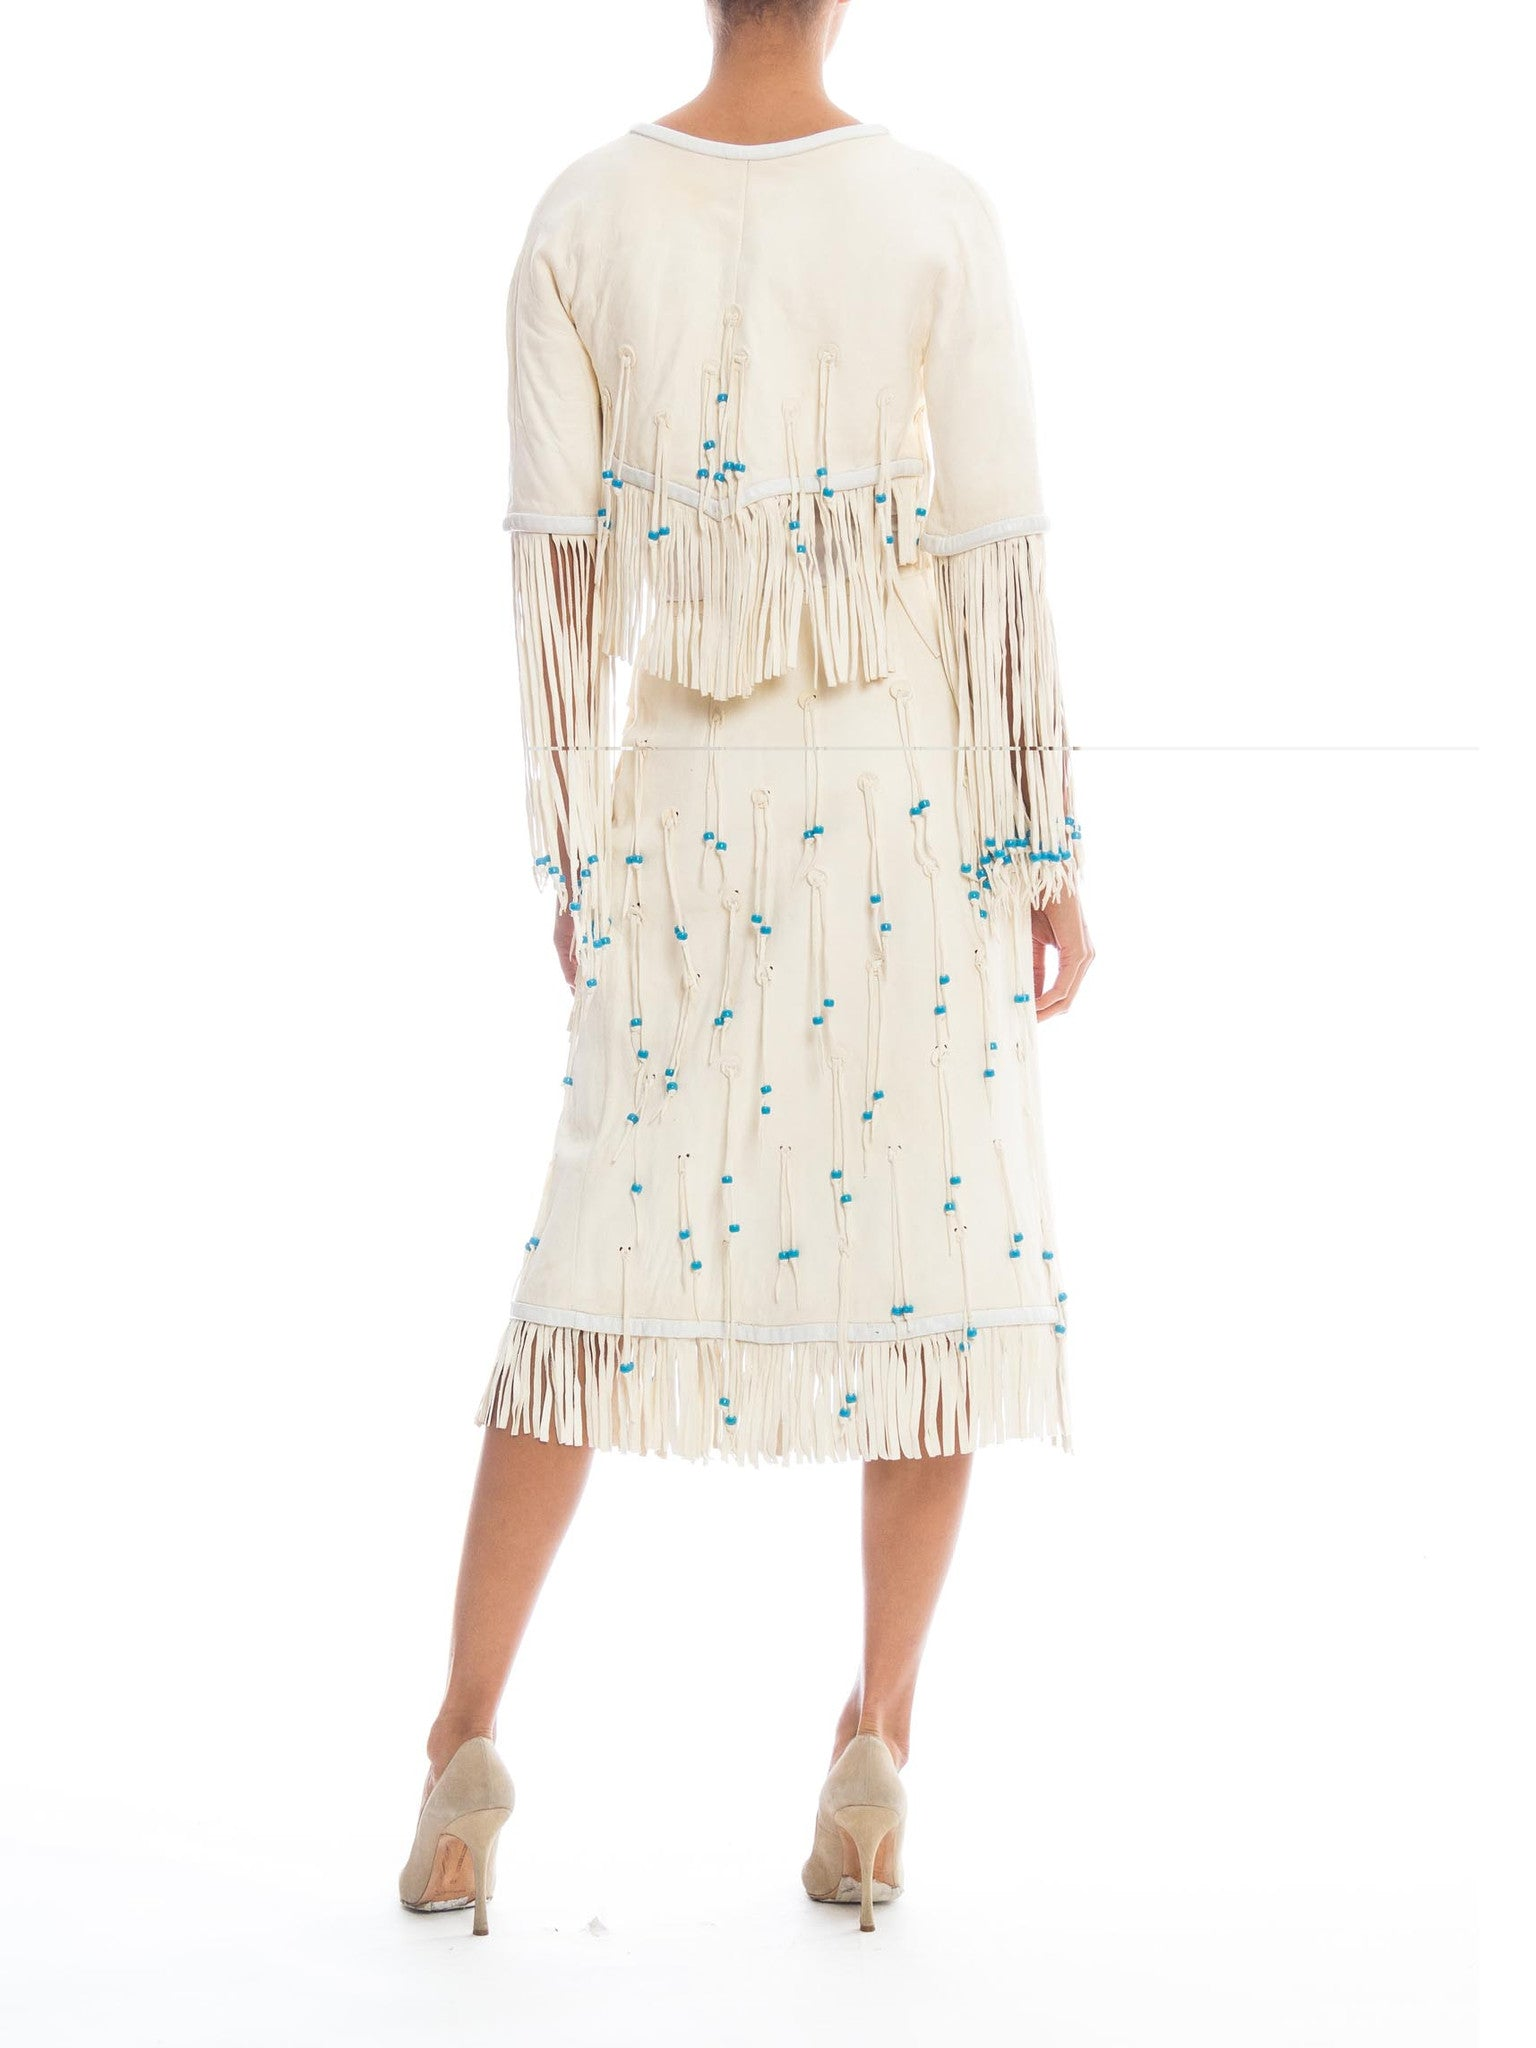 1970S GIORGIO SANT'angelo Off White Suede Fringed Skirt & Cropped Jacket Ensemble